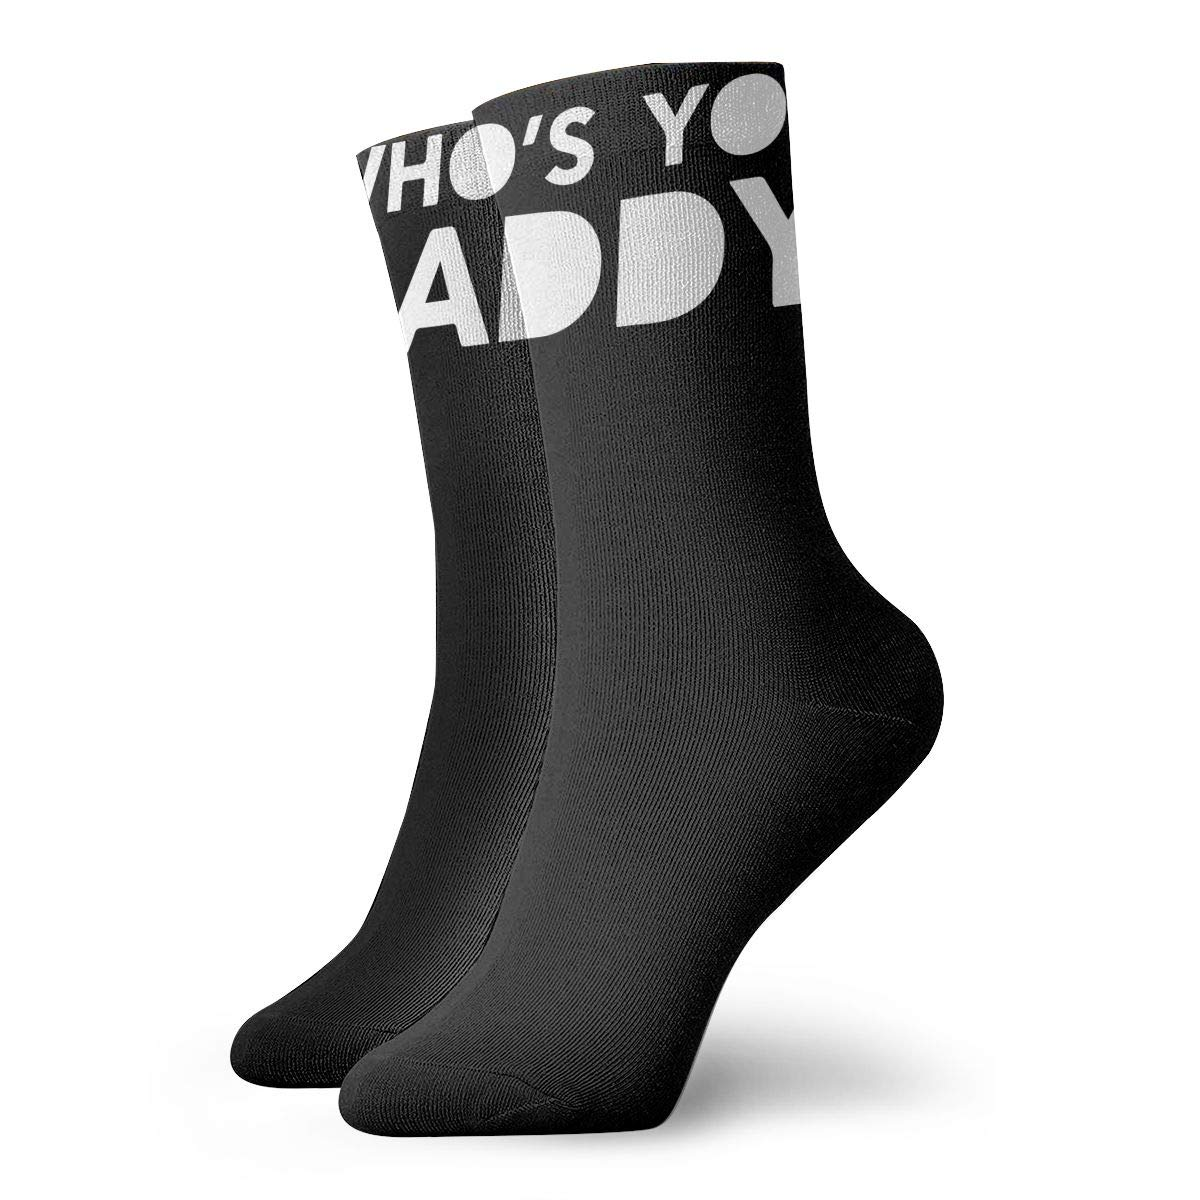 Whos Your Daddy Fashion Dress Socks Short Socks Leisure Travel 11.8 Inch